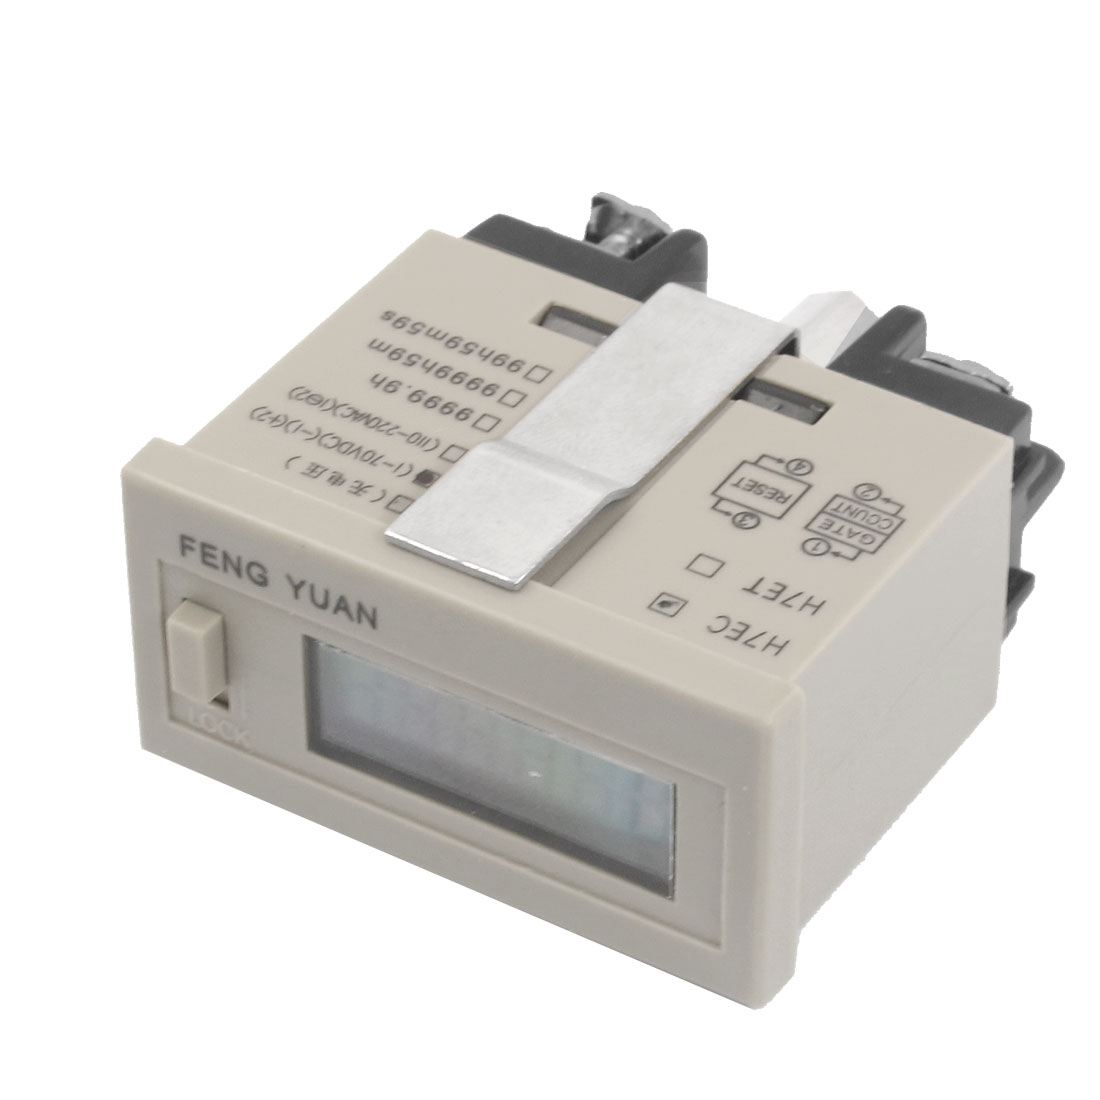 AC 220V Reset 0 - 999999 Counting Range Resettable Digital Counter